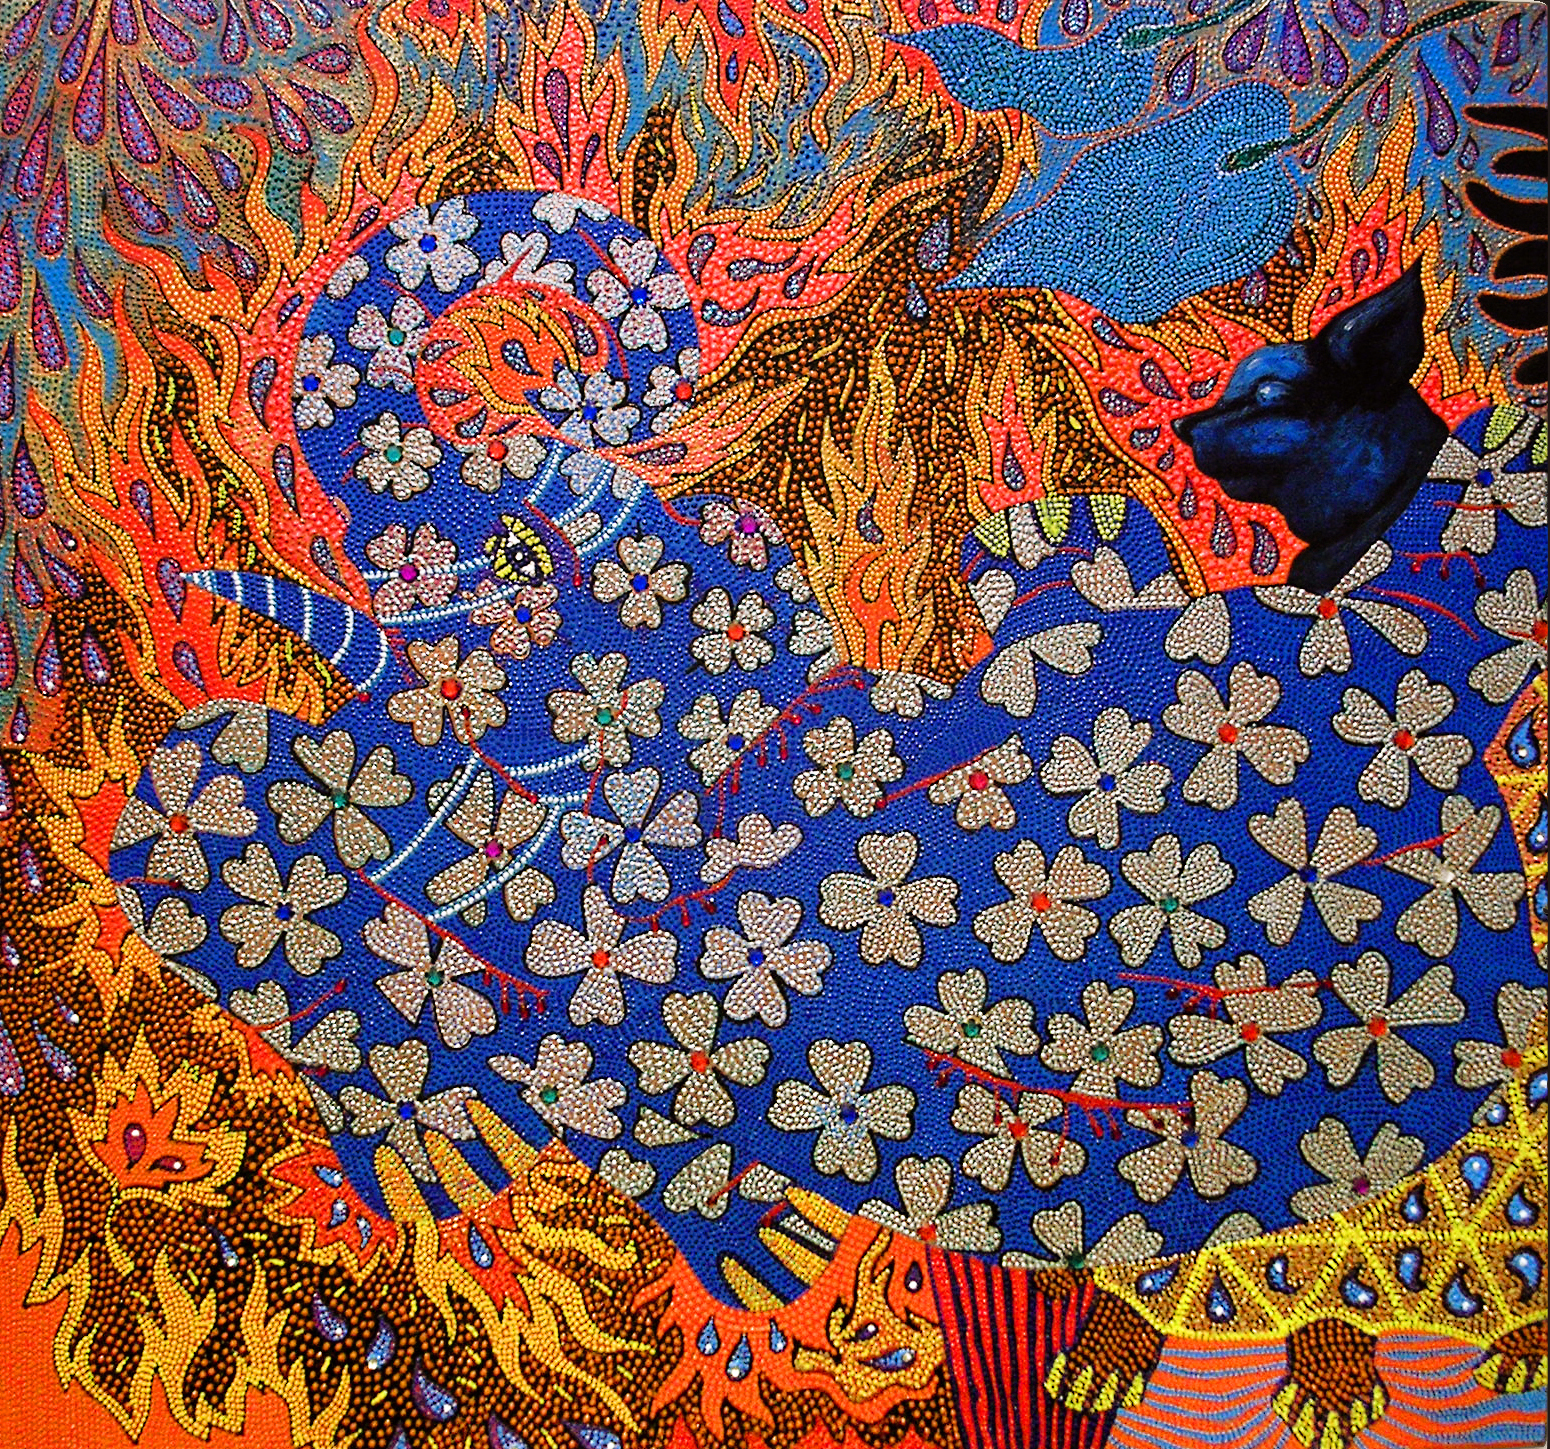 """Blue Elephant Inferno,2005 Oil, acrylic and jewels on canvas 30"""" x 28"""" Featured in the  Queens Biennial 2006: """"Everything All At Once """" catalog"""